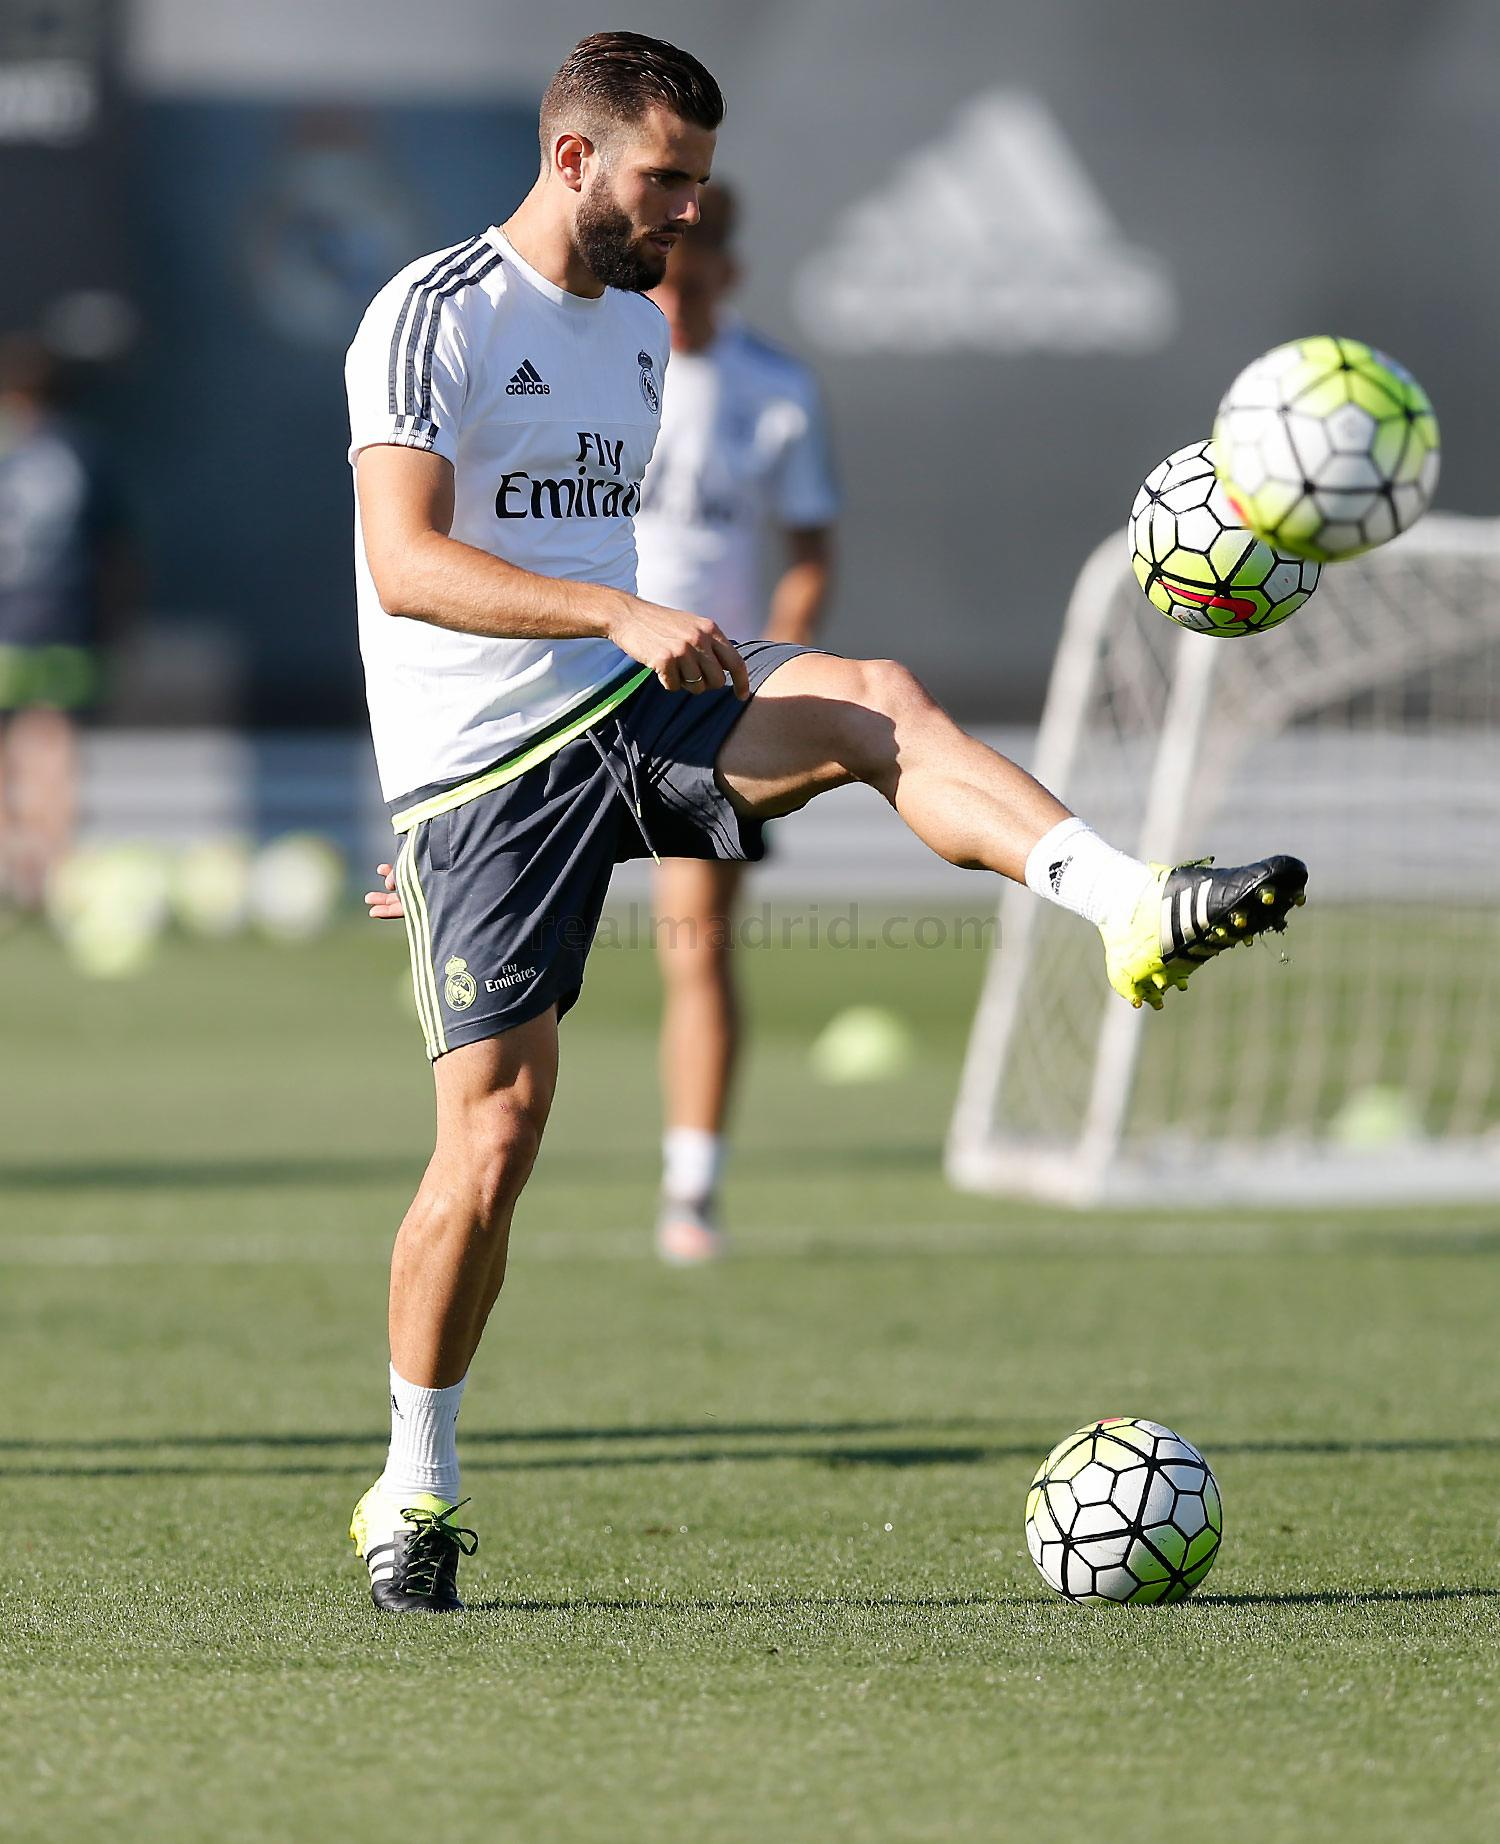 Real Madrid - Entrenamiento del Real Madrid - 08-09-2015